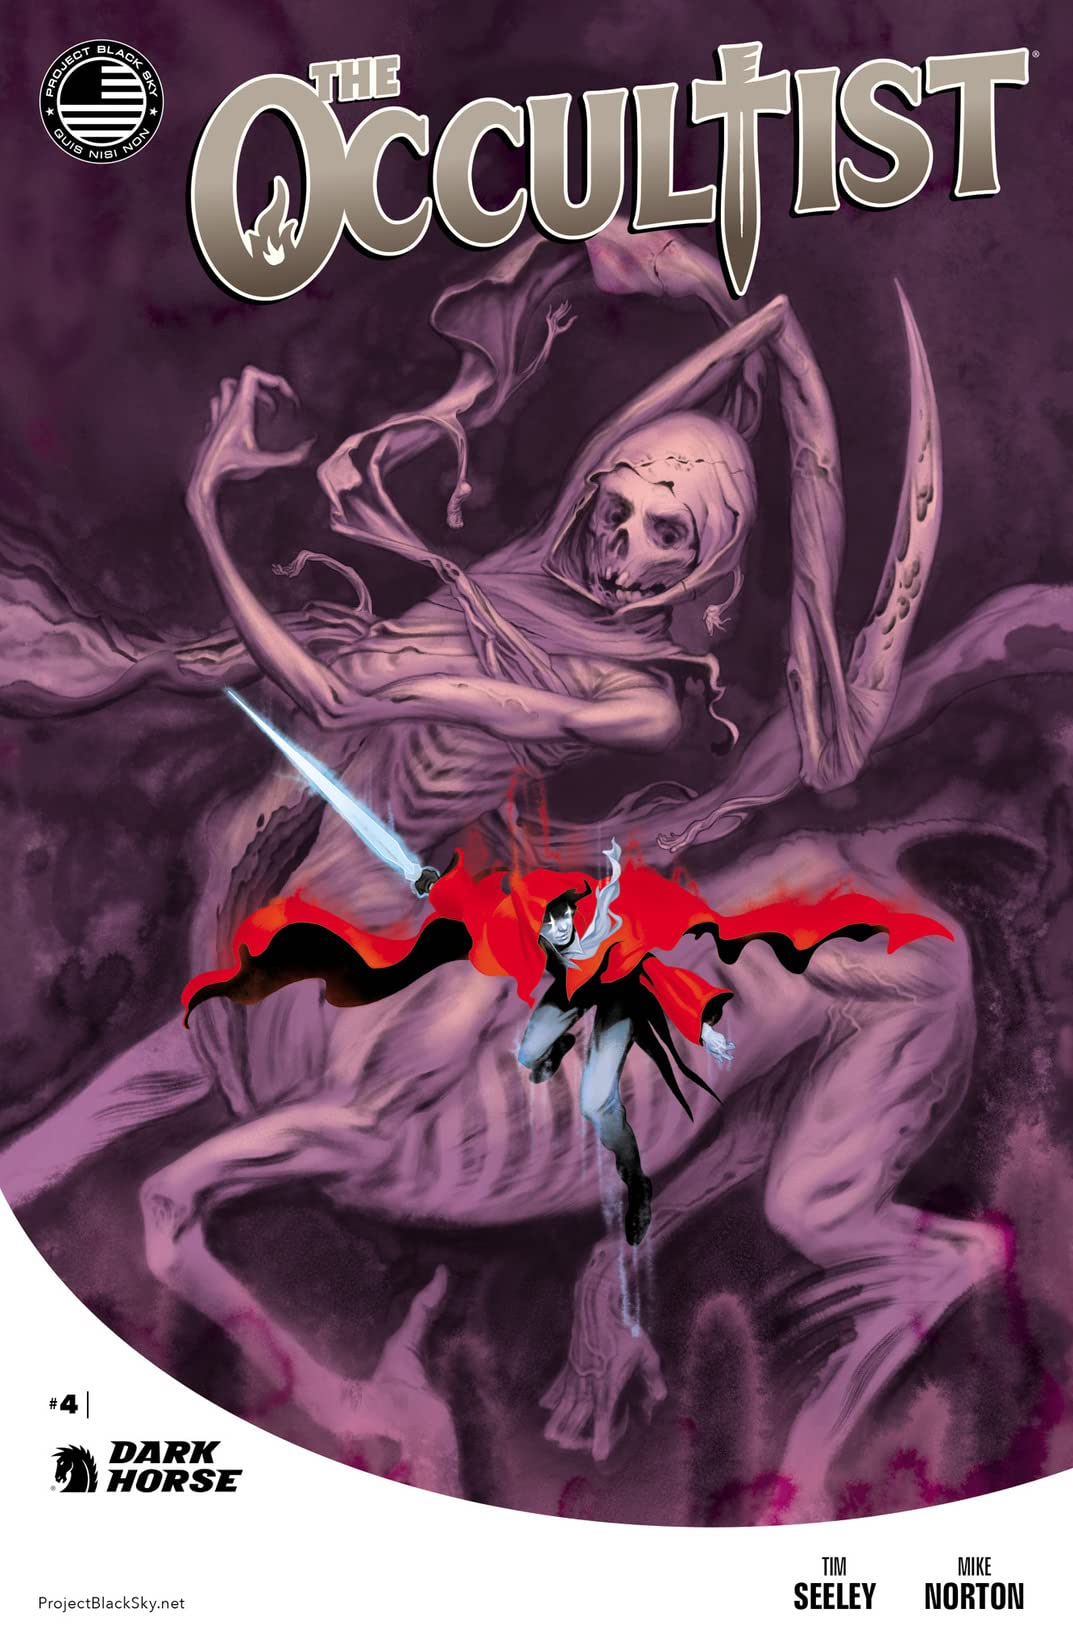 The Occultist II #4